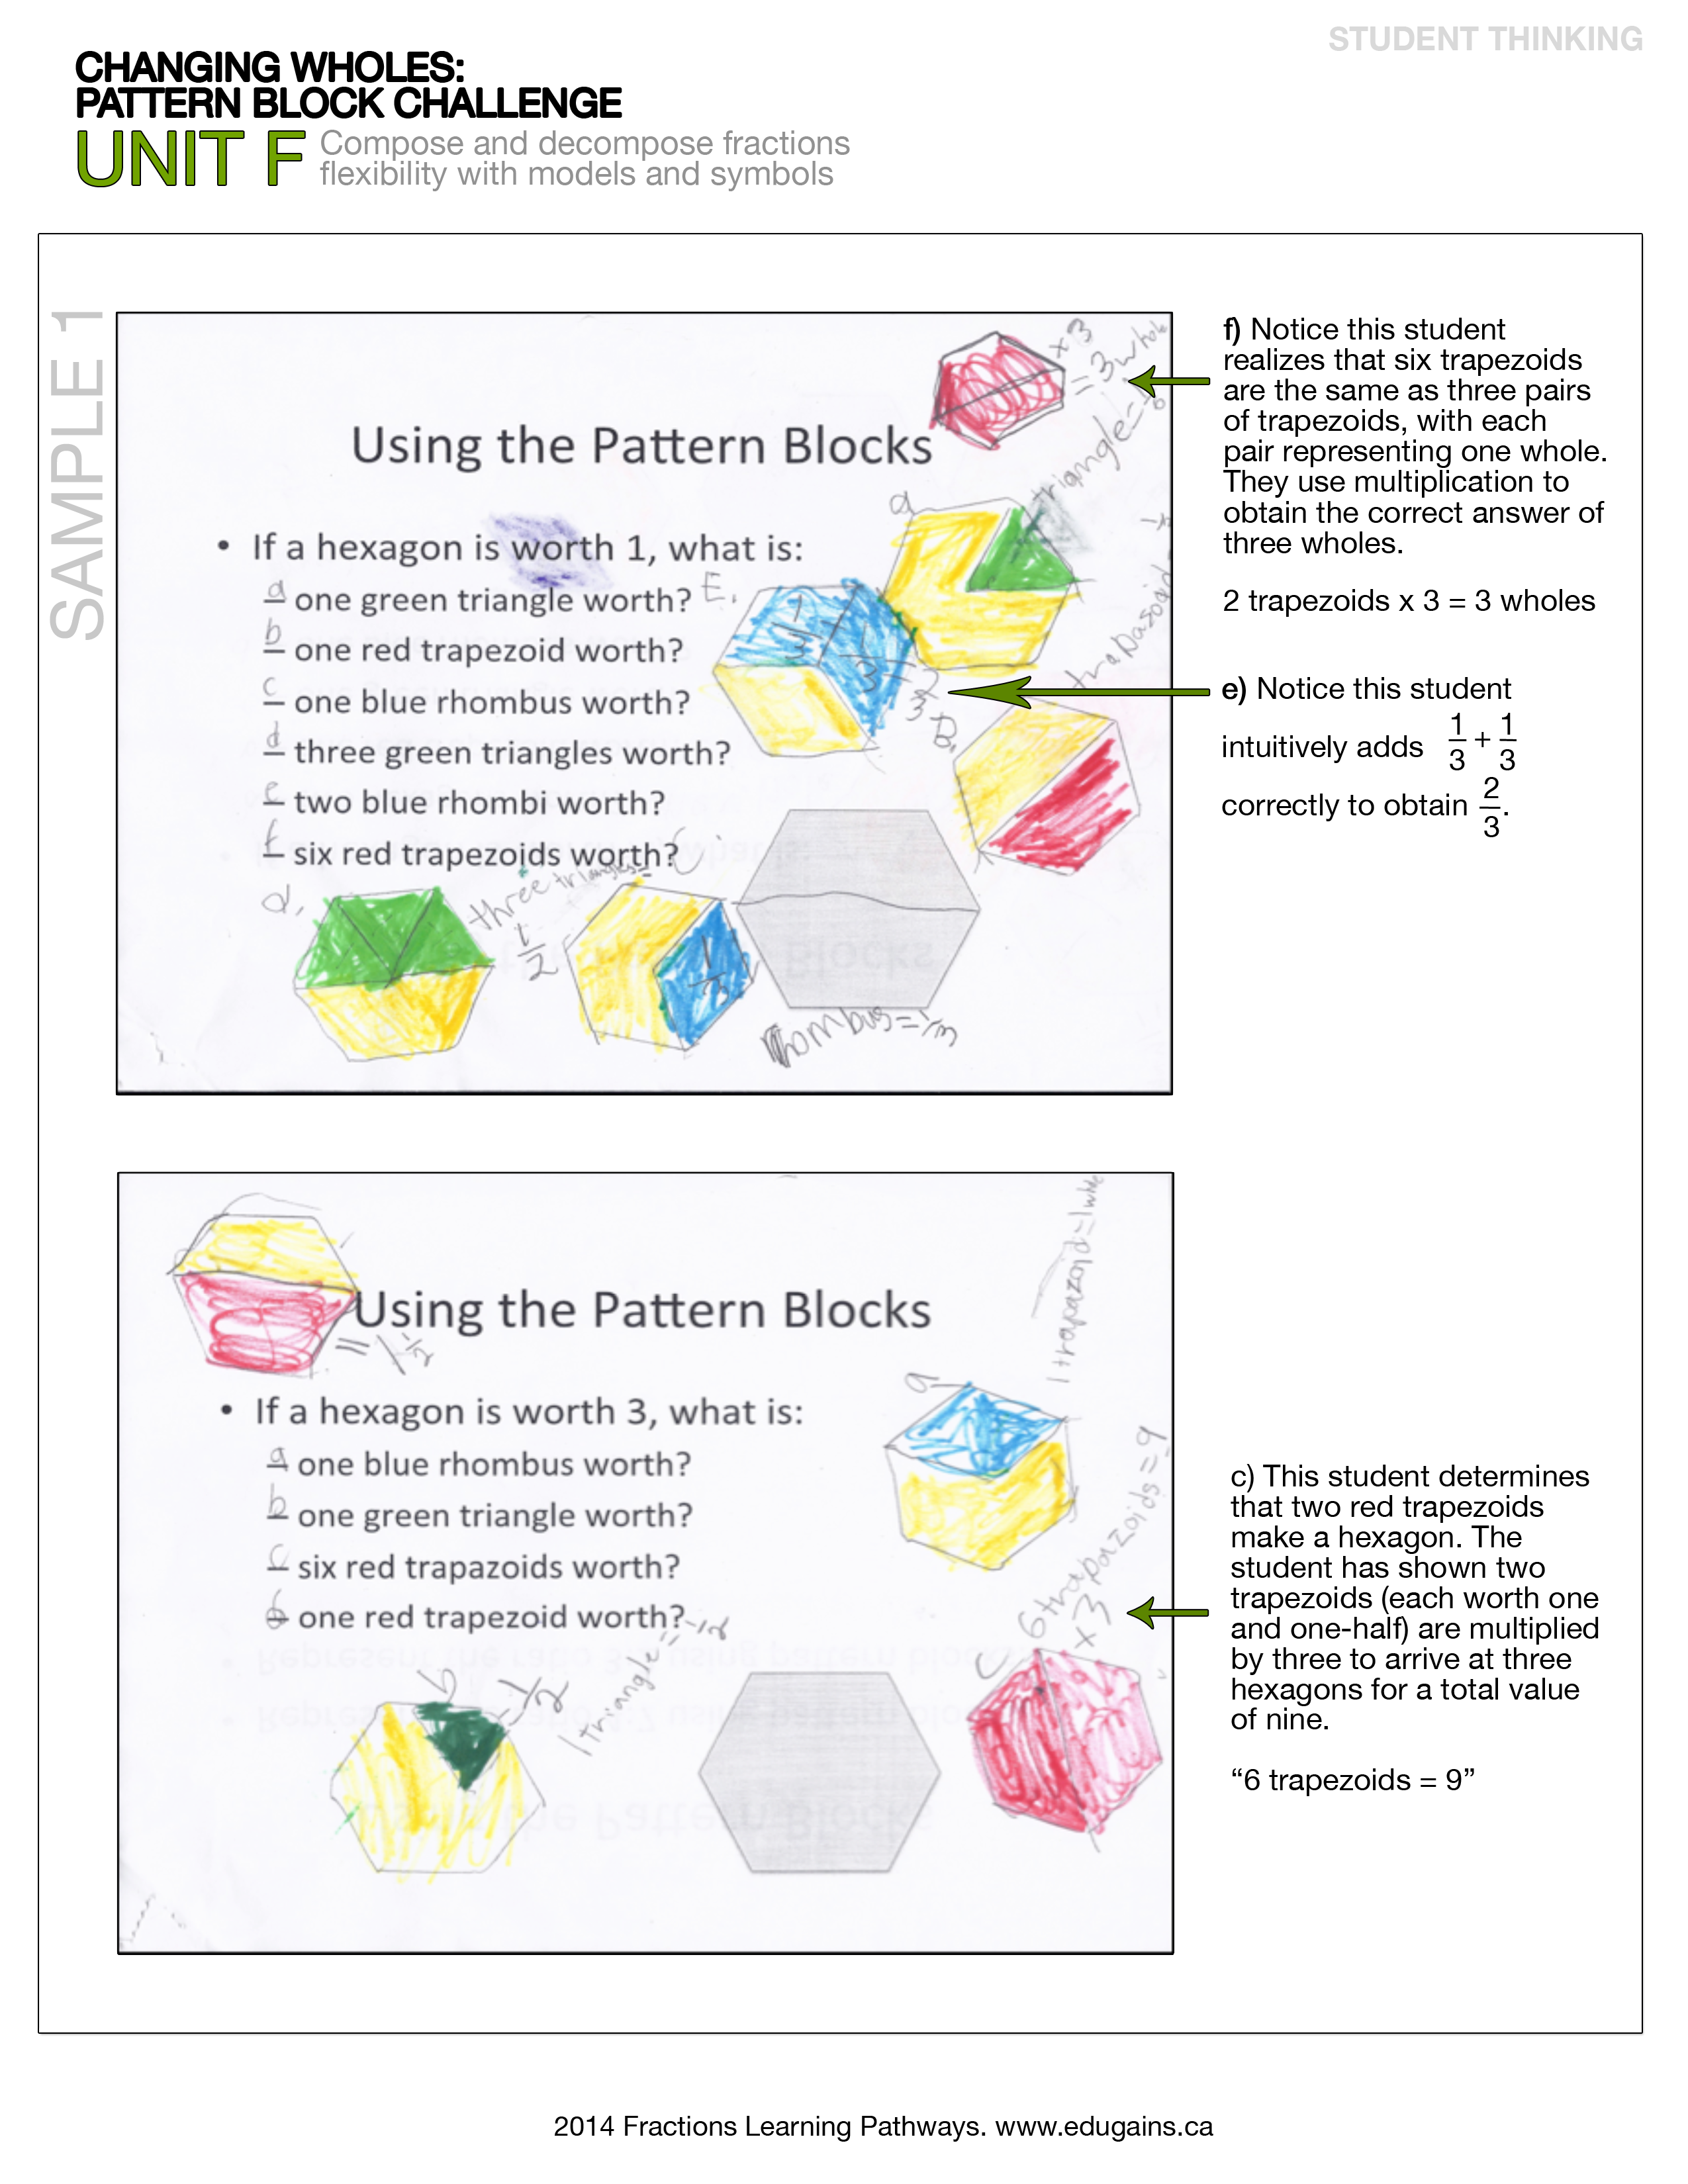 Pattern Block Fractions Cool Inspiration Design